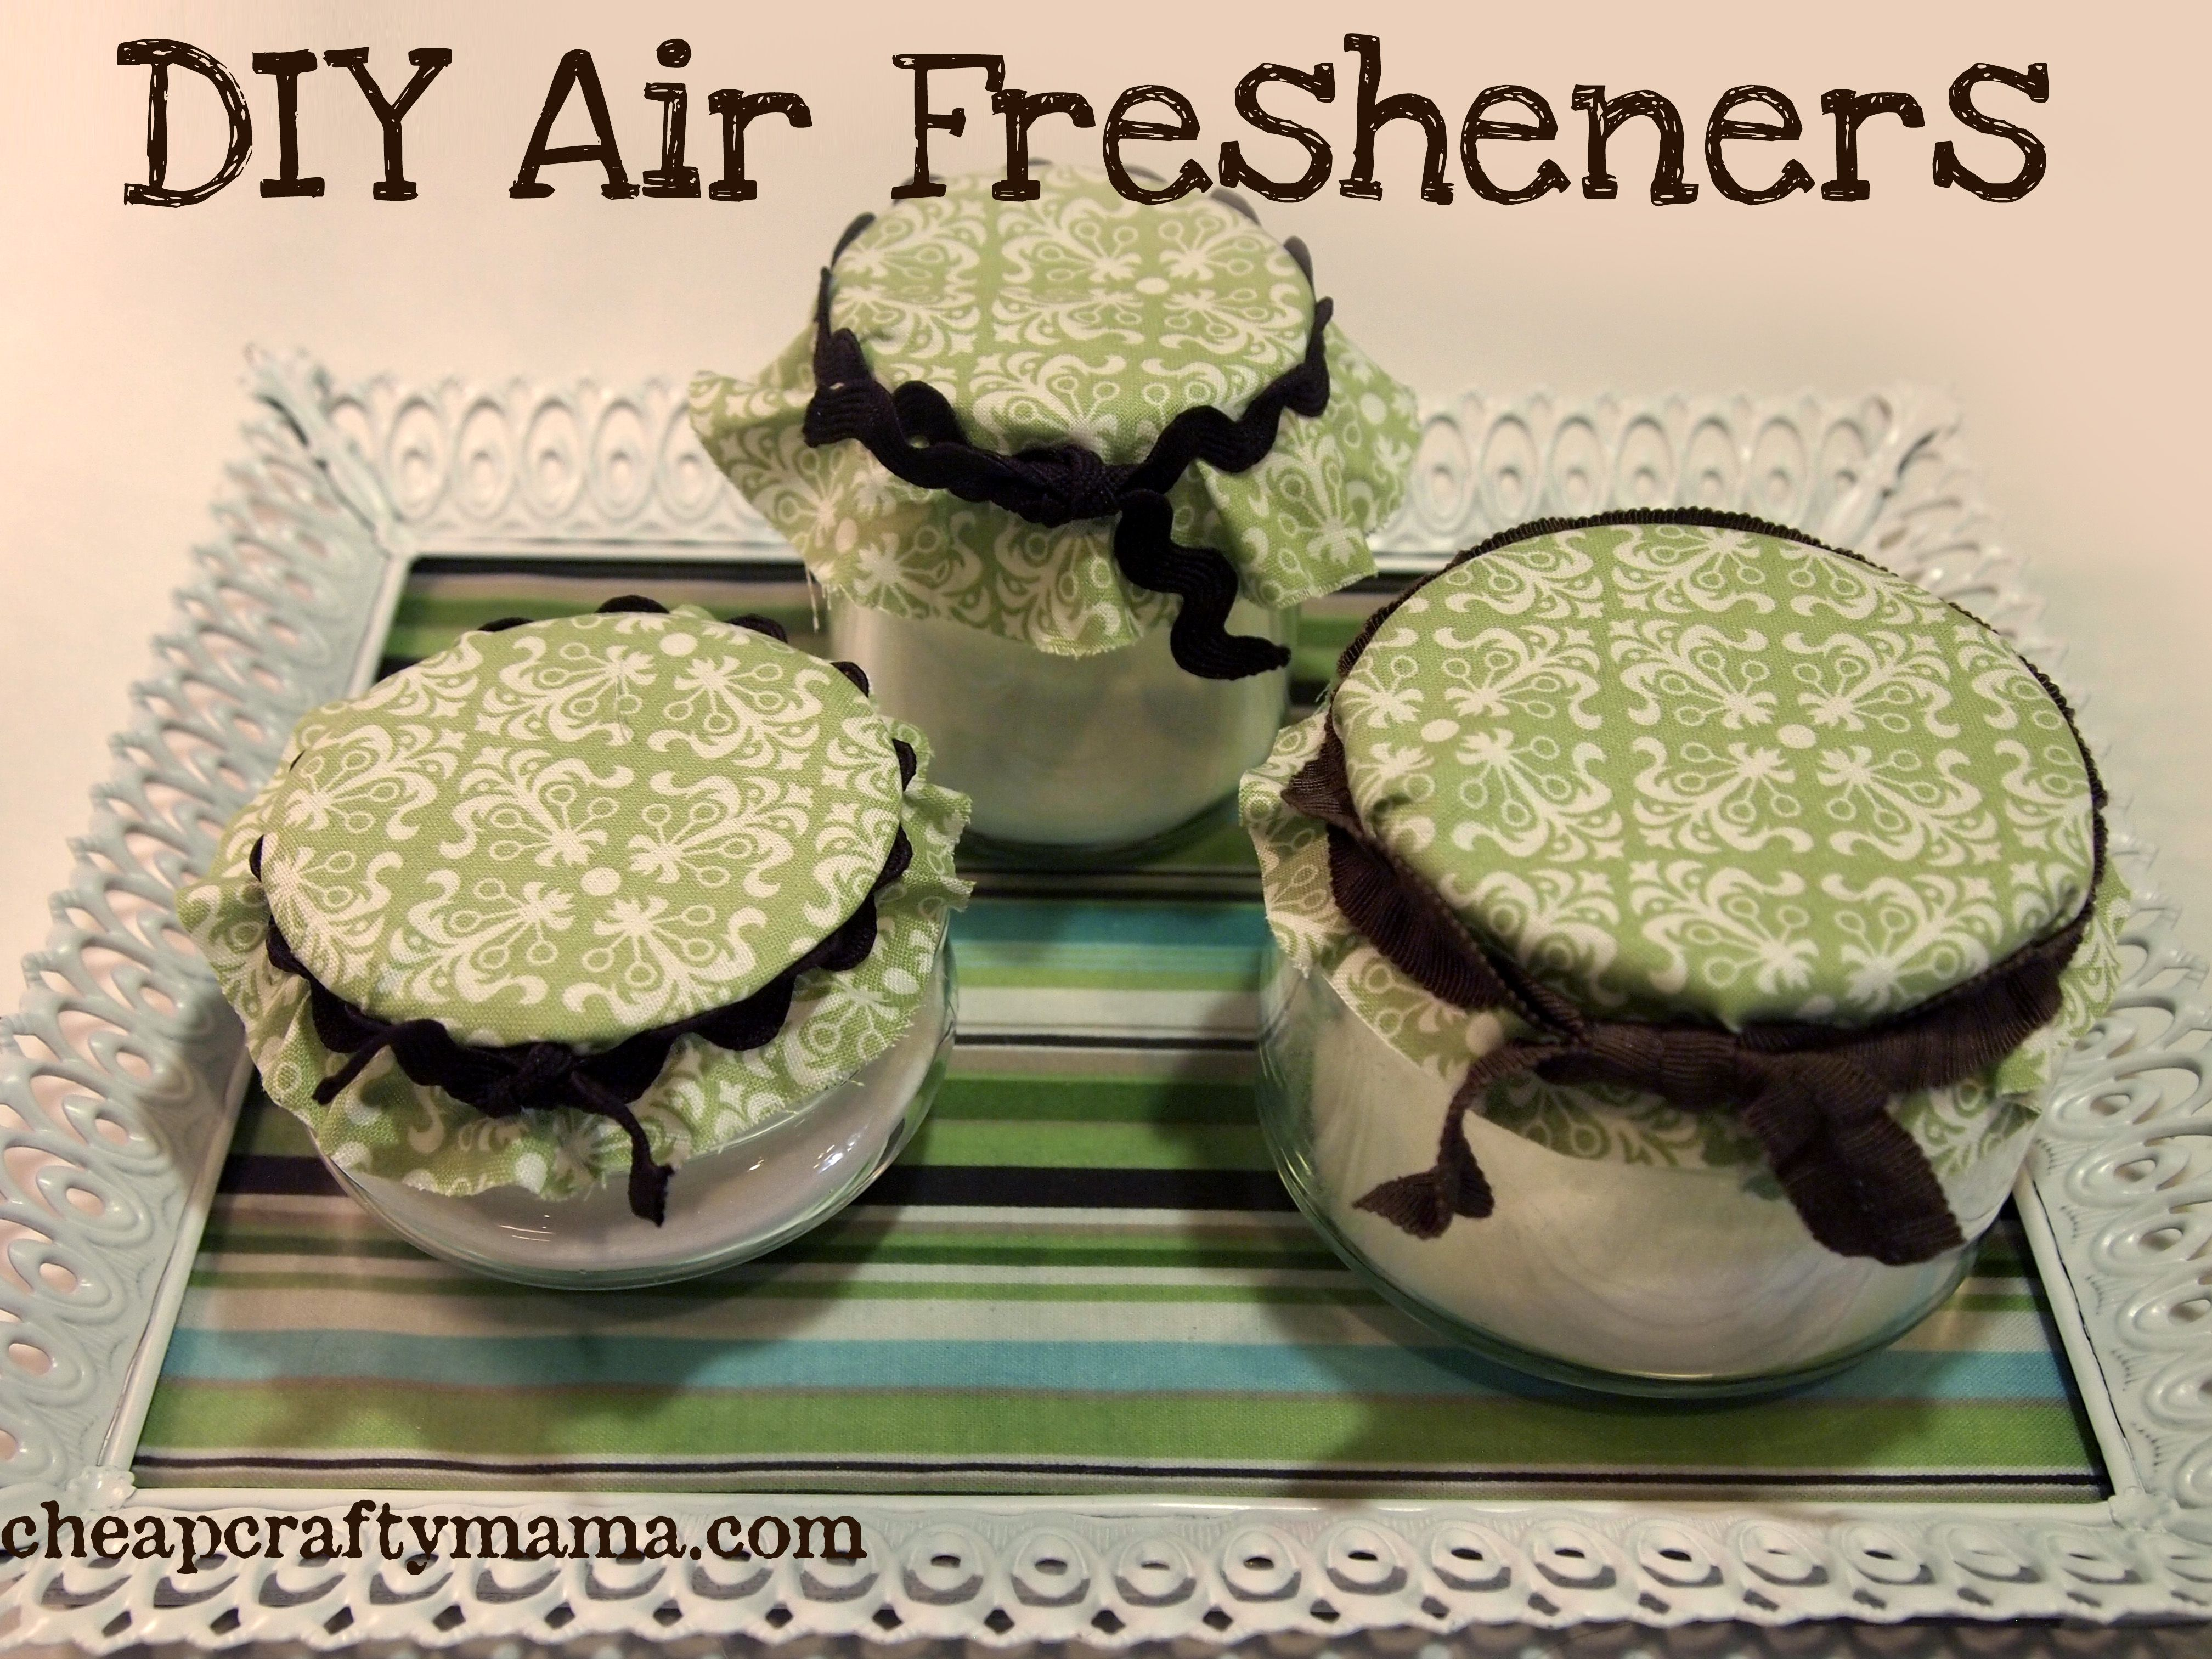 super easy diy air fresheners from cheap crafty mama for the home basteln bastelarbeiten. Black Bedroom Furniture Sets. Home Design Ideas